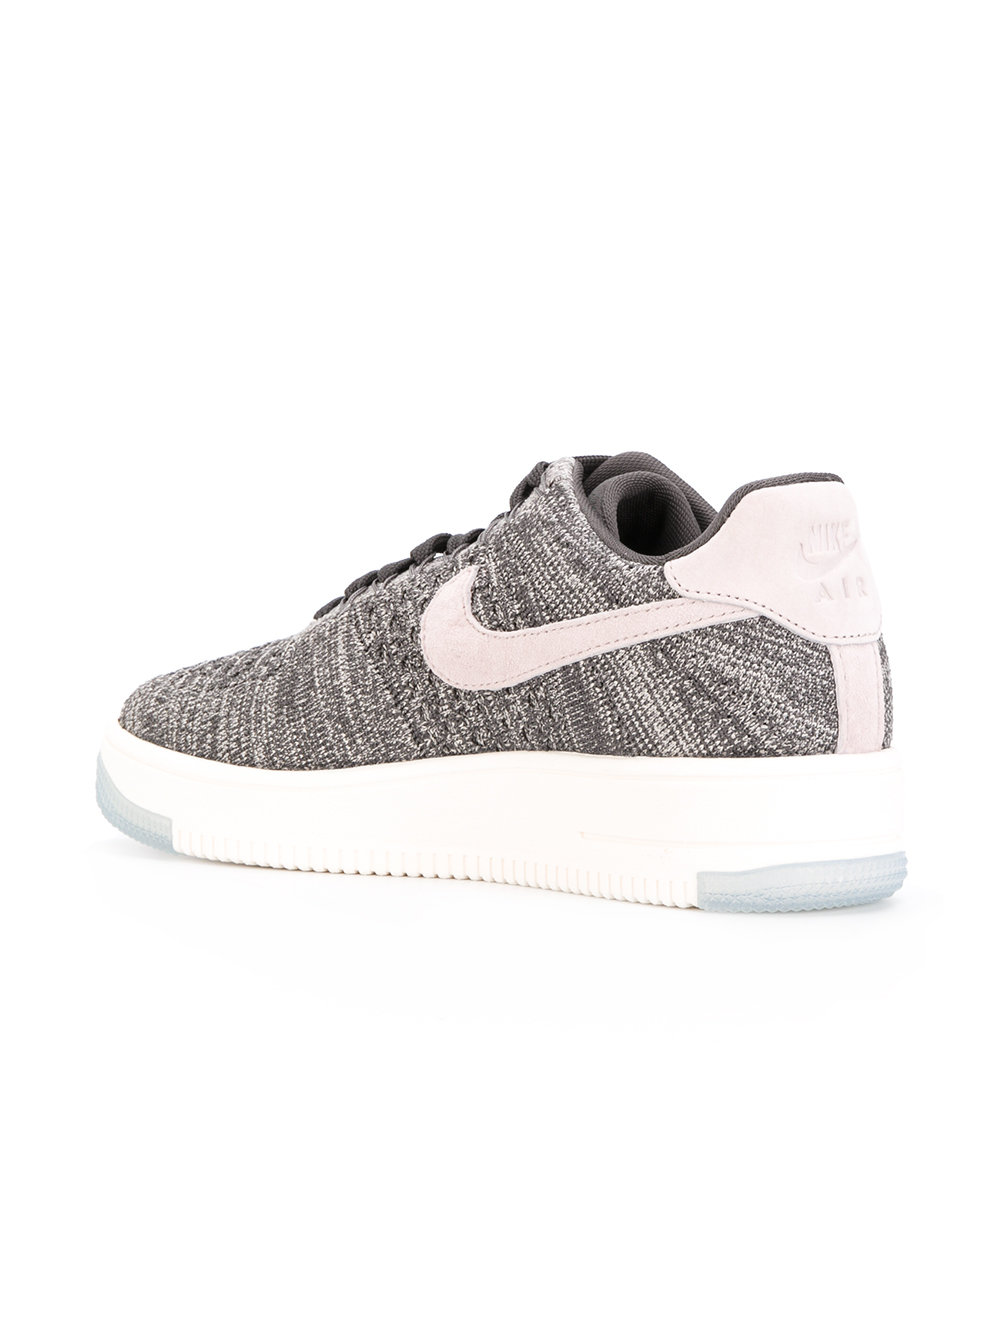 c67512a90ed Nike Air Force 1 Flyknit Low Sneakers - Farfetch